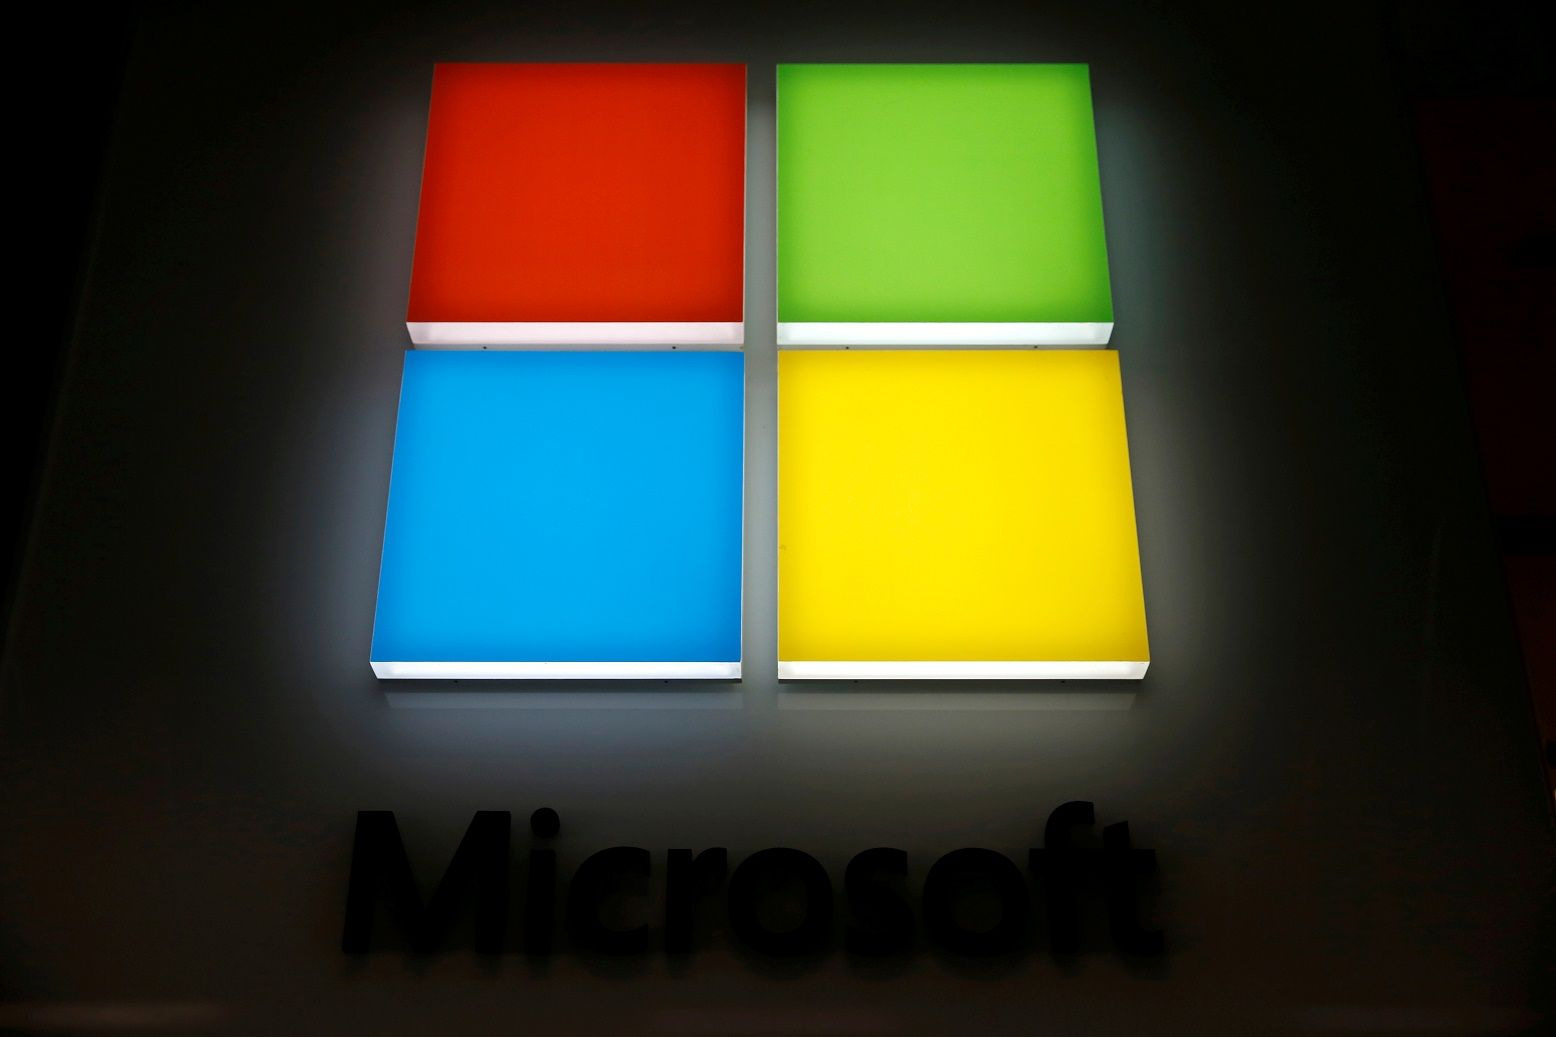 microsoft buys linkedin deal acquisition